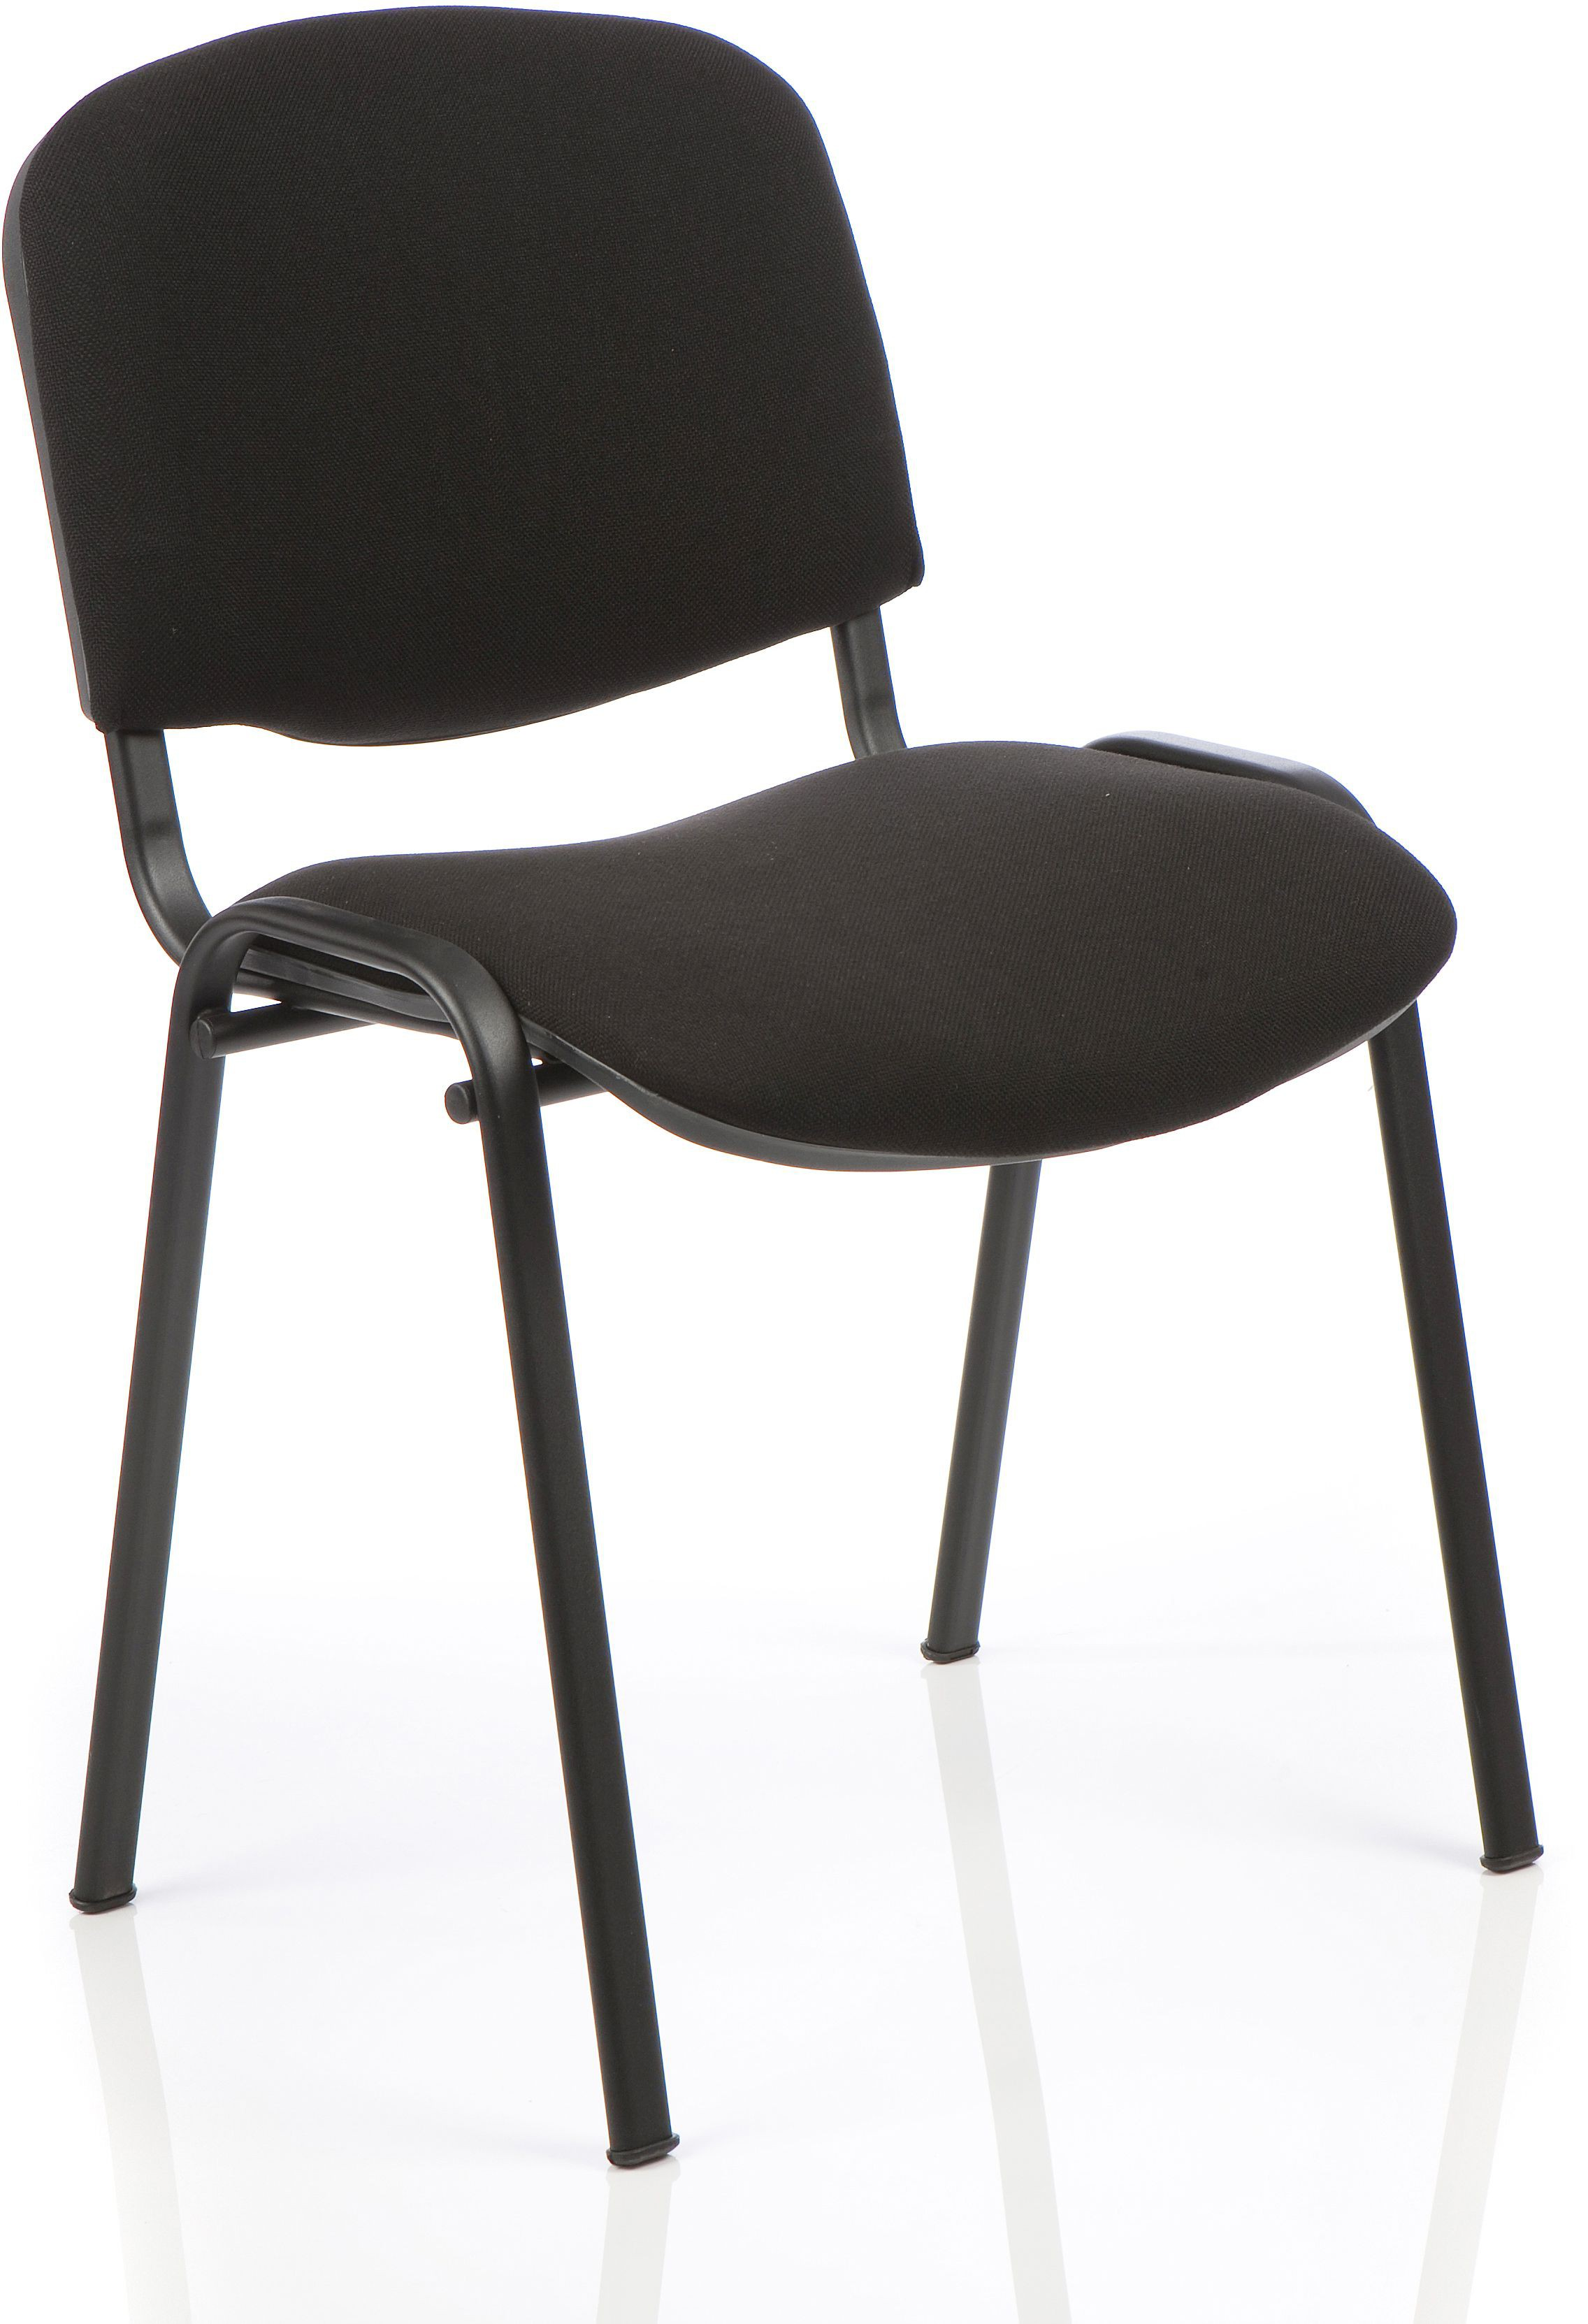 4 x Conference Stacking Chair Charcoal fabric Bundle Offer